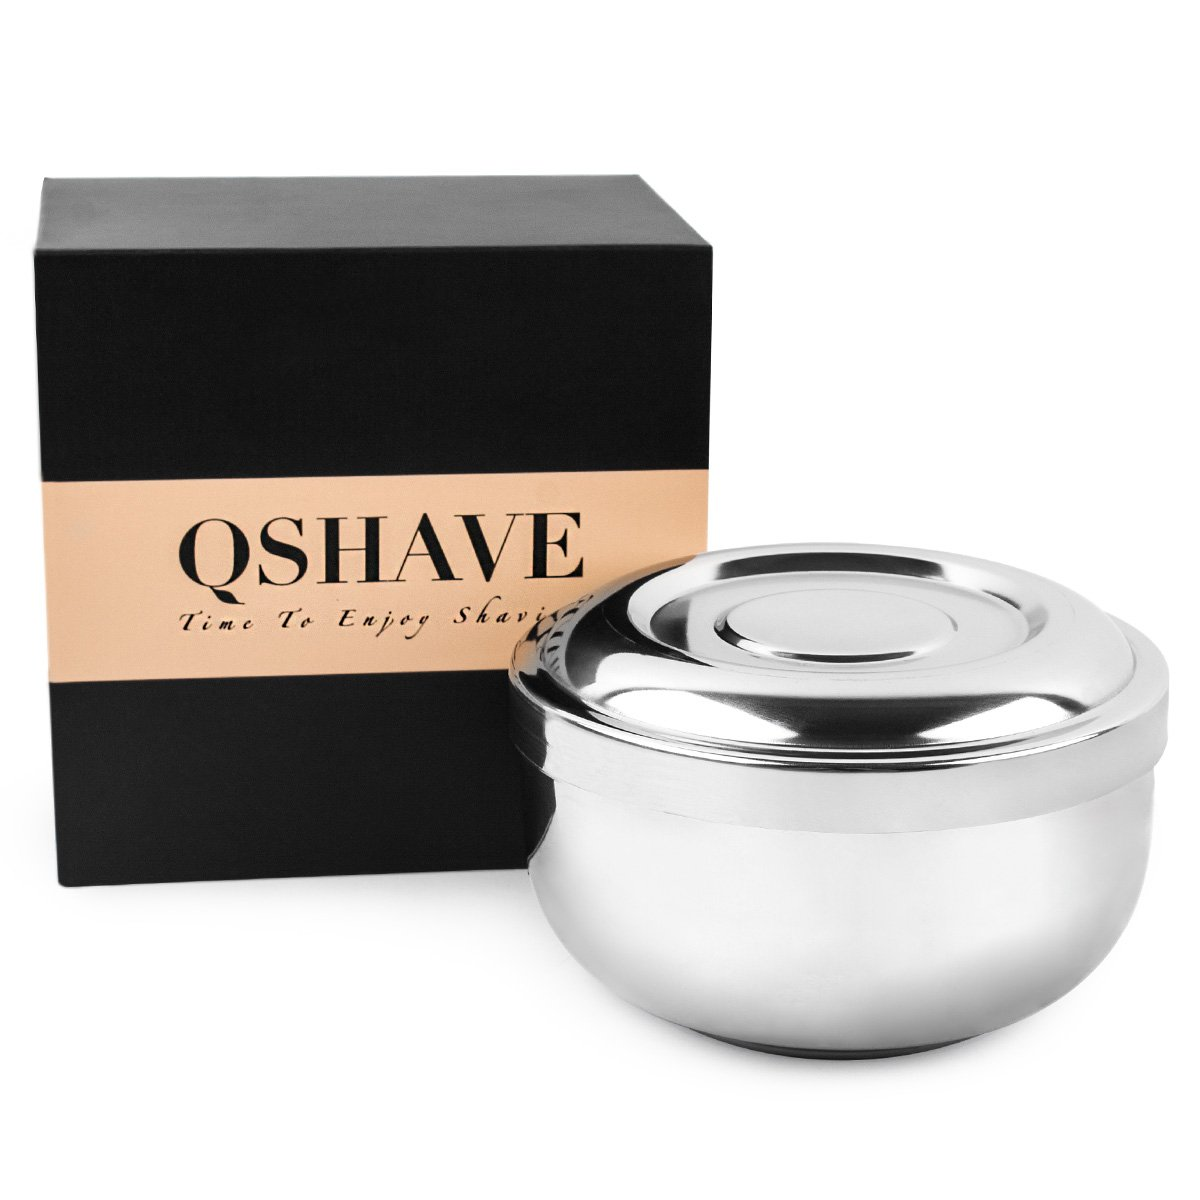 QSHAVE Stainless Steel Shaving Bowl with Lid 4 Inch Diameter Large Deep Size Chrome Plated Shinning Finish